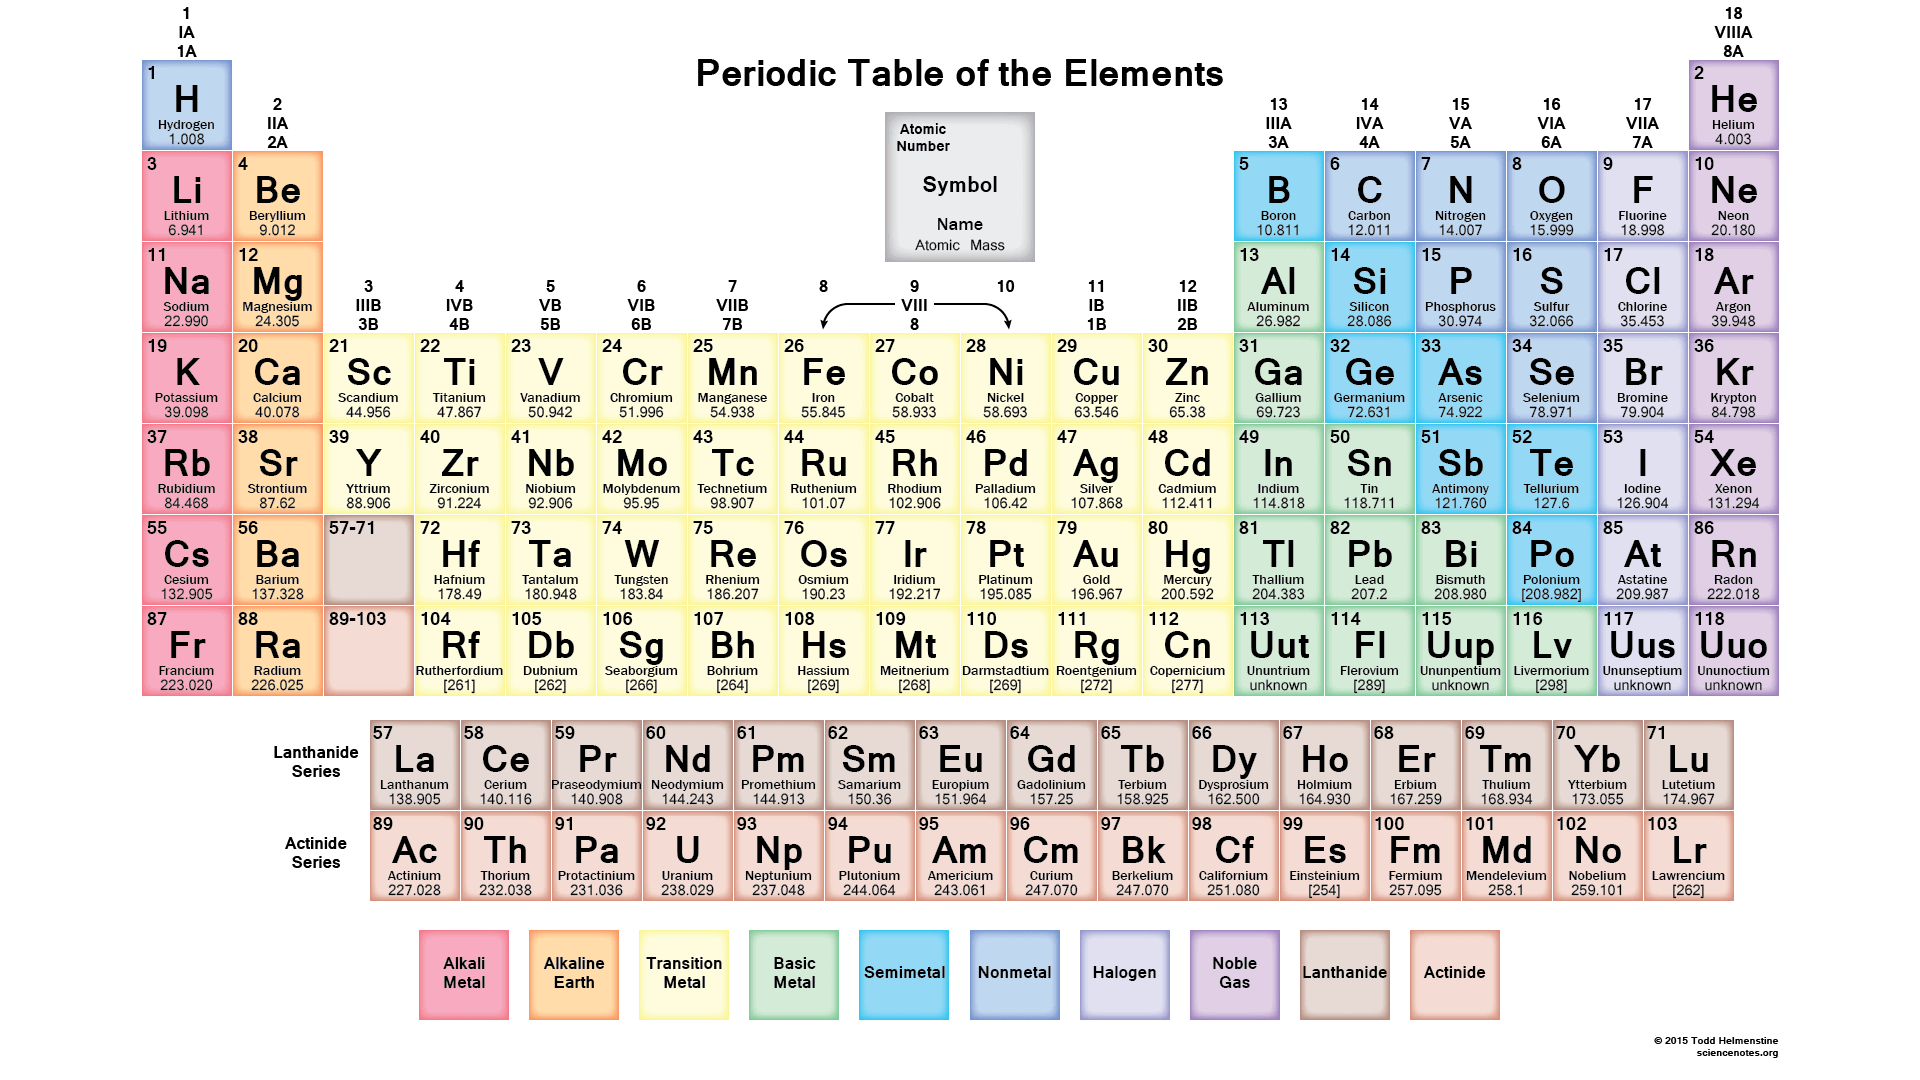 30 printable periodic tables for chemistry science notes for 110 element in periodic table